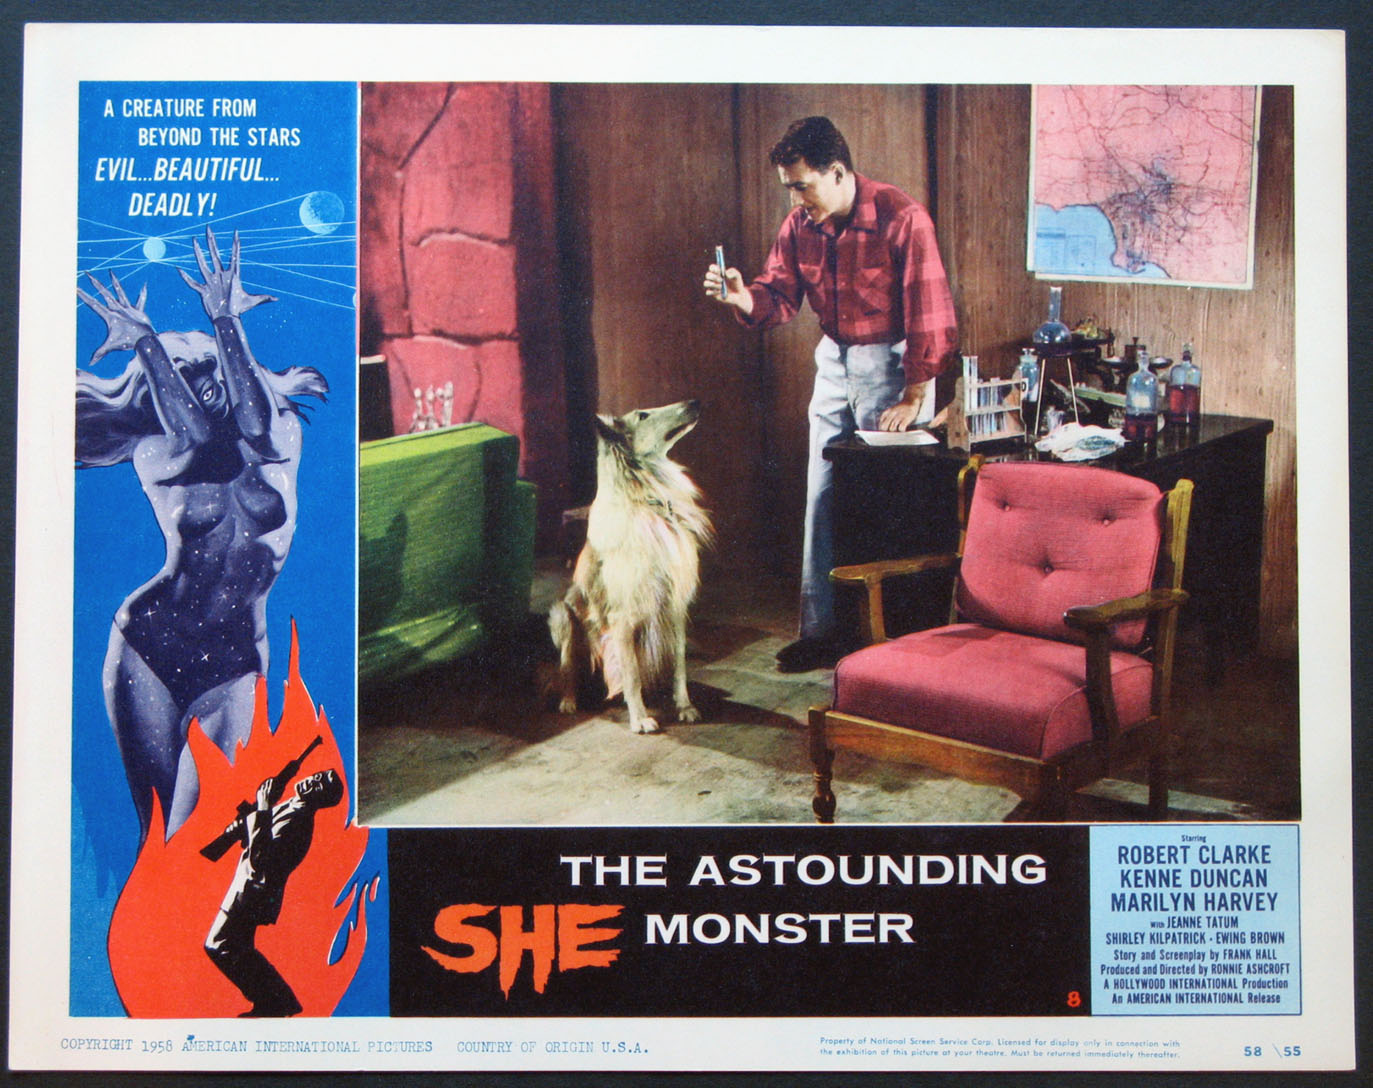 ASTOUNDING SHE MONSTER @ FilmPosters.com